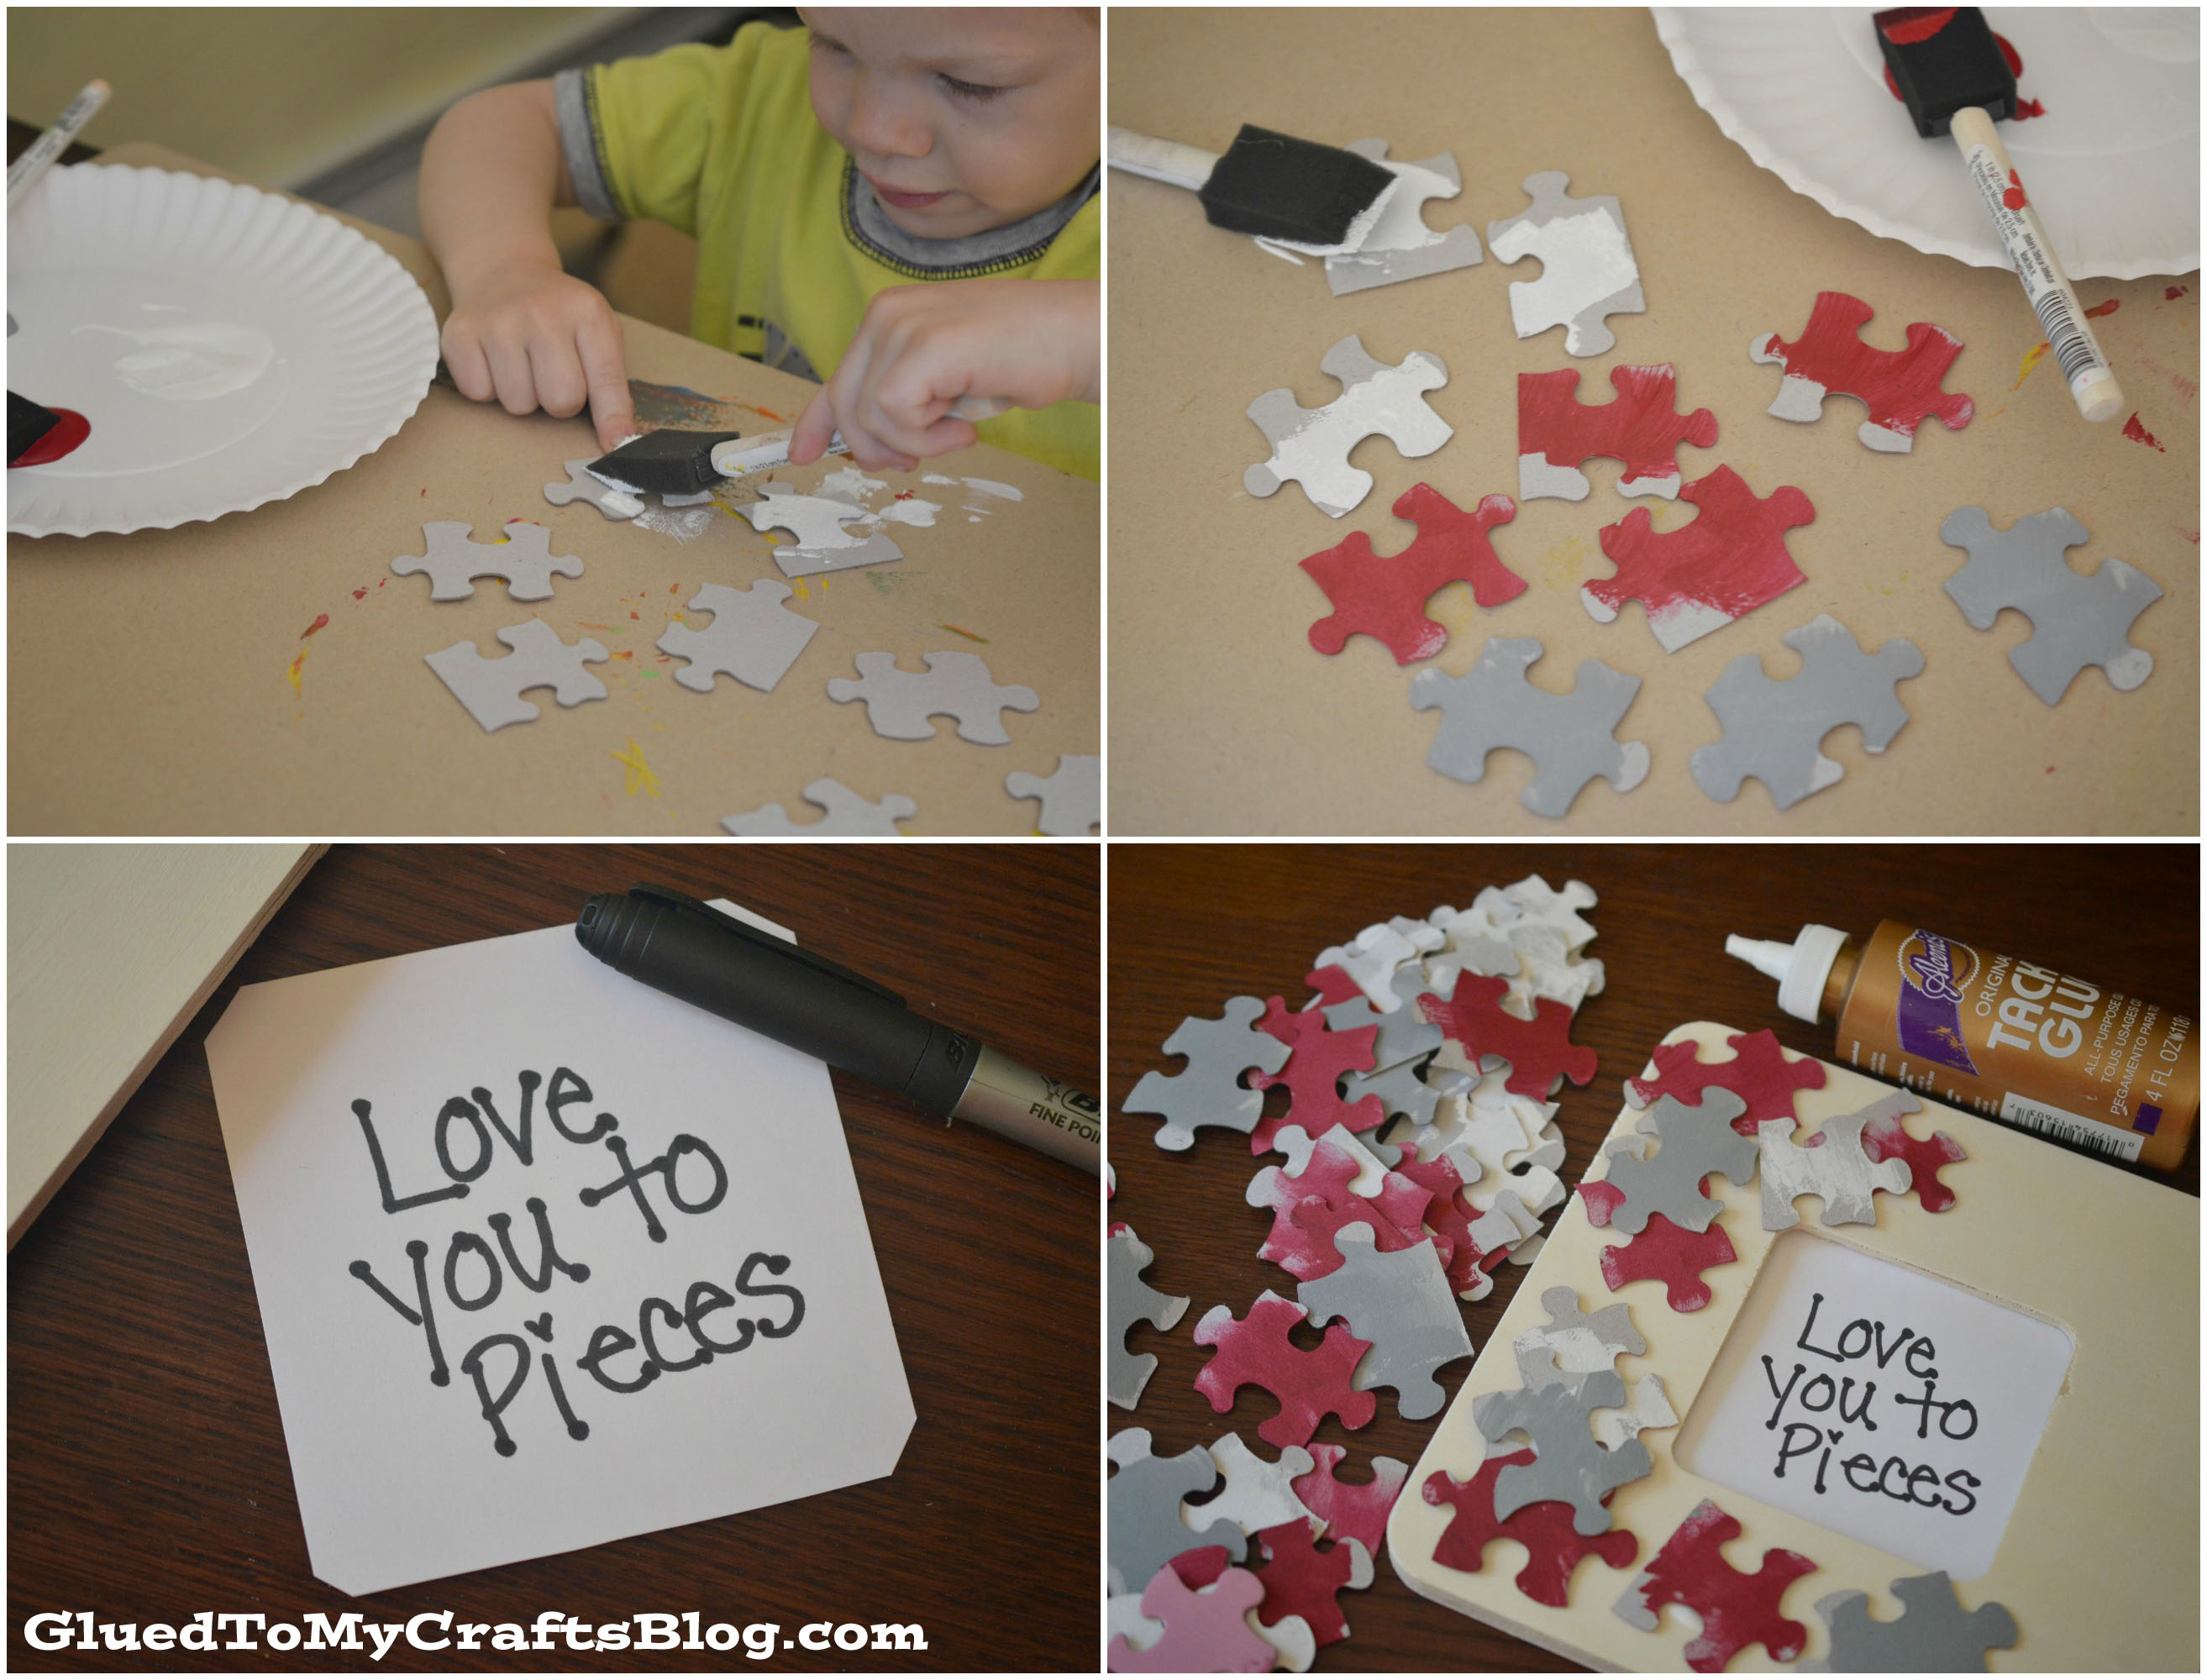 First apartment ornament - First Apartment Ornament Love Pieces Fathers Day Kids Craft Ideas